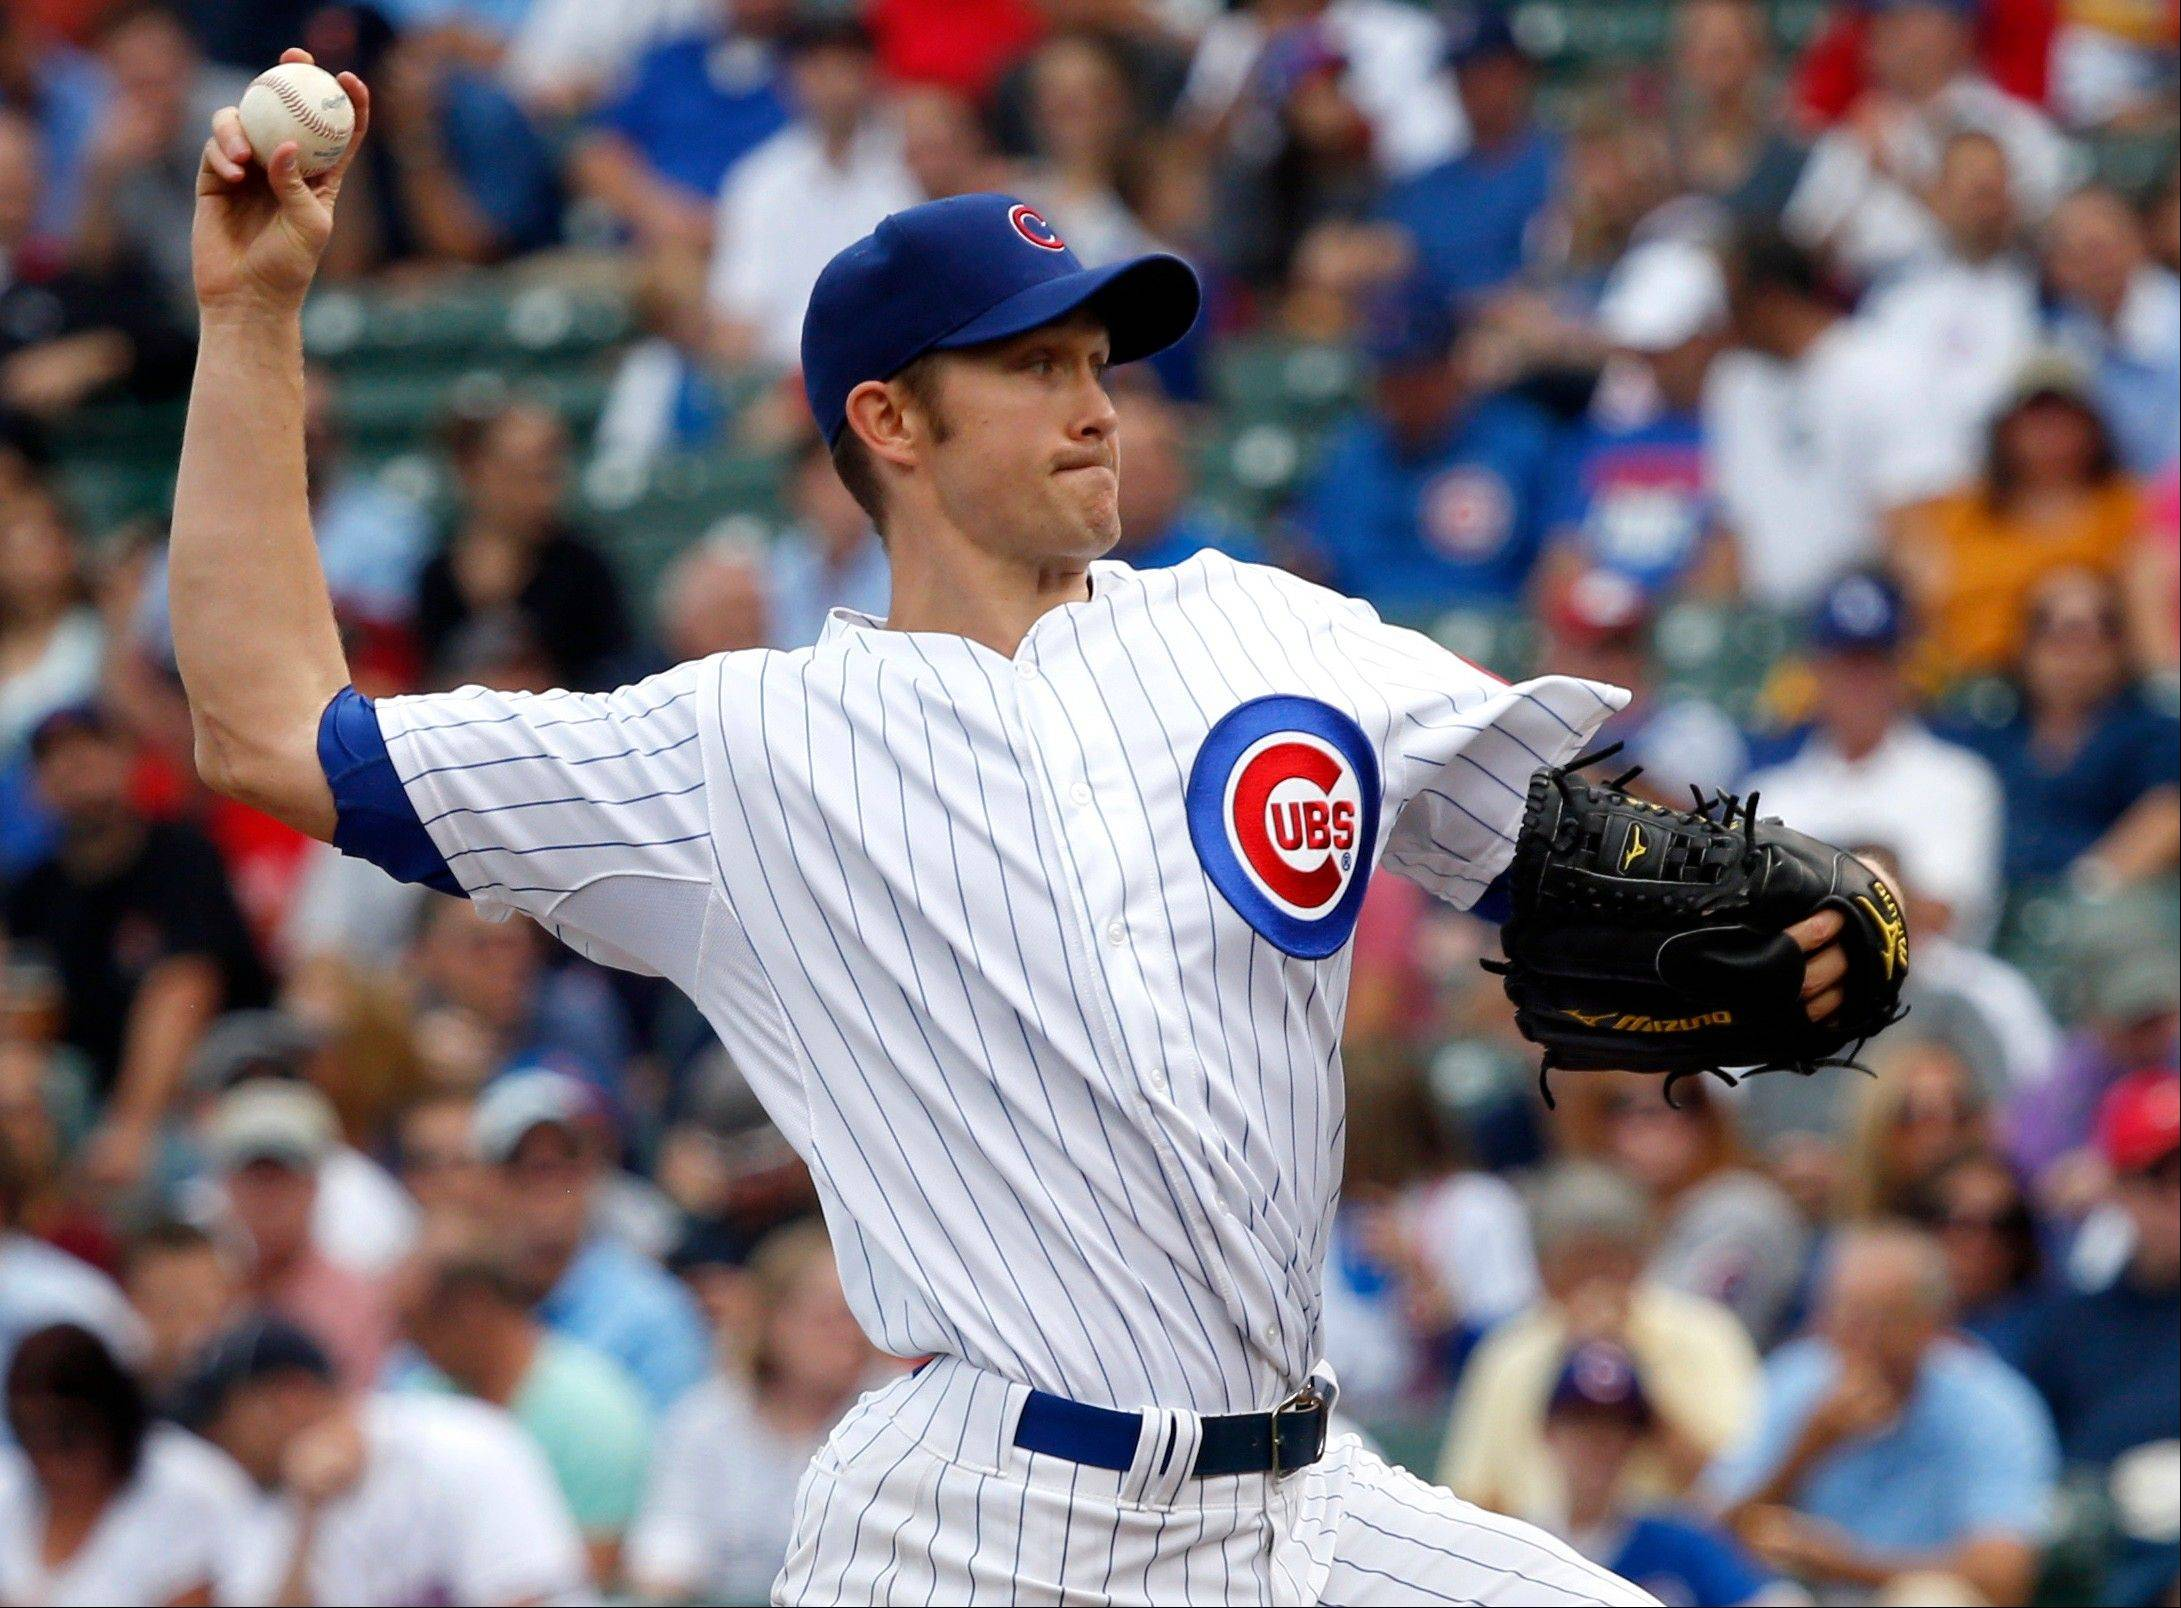 Chicago Cubs starting pitcher Scott Baker delivers during the first inning of a baseball game the Atlanta Braves Friday, Sept. 20, 2013, in Chicago.